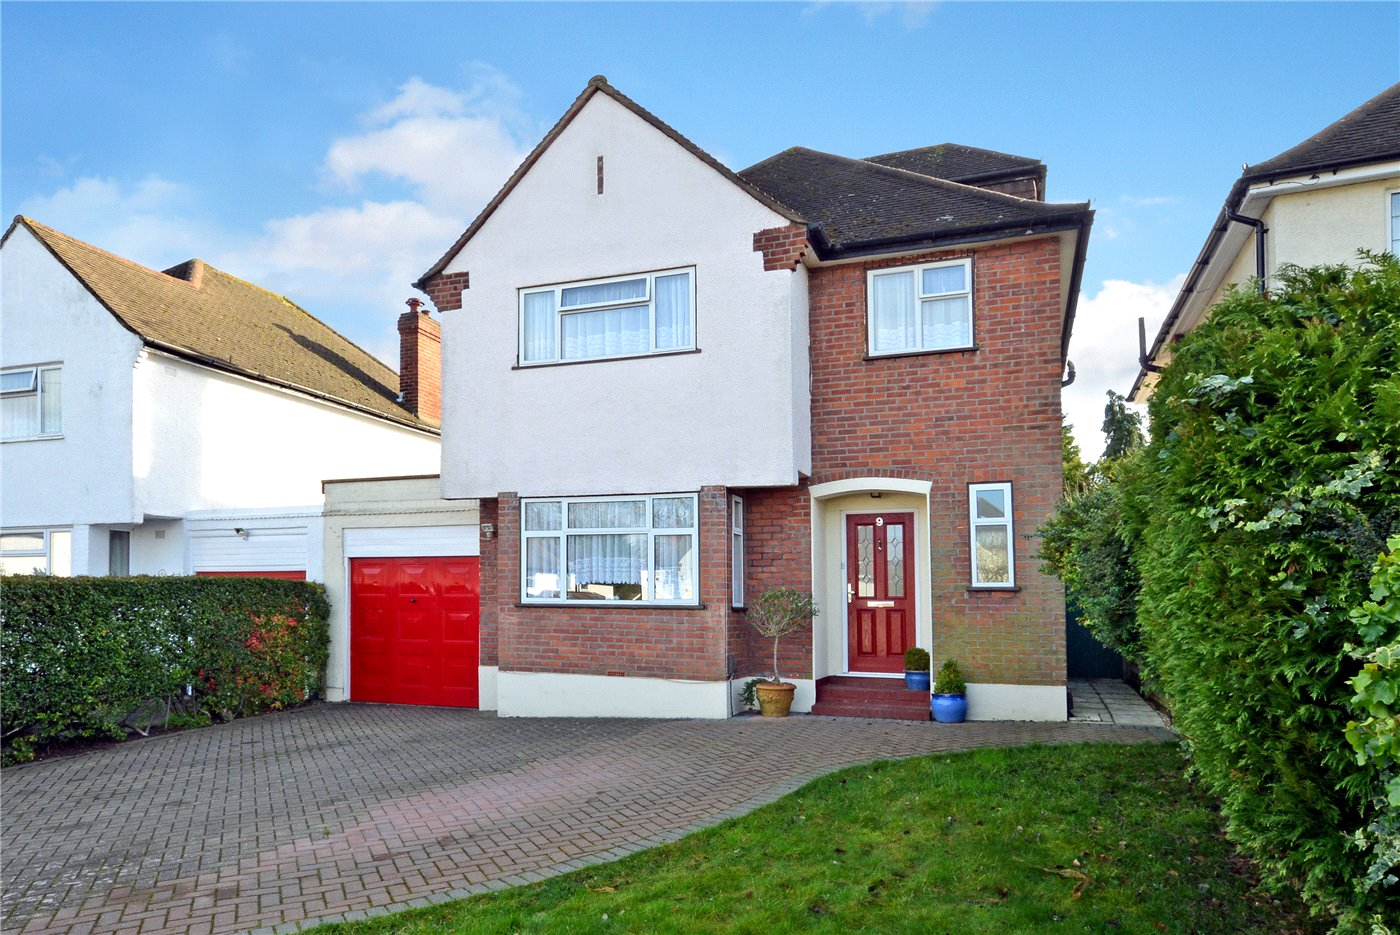 Four bedroom house in Banstead